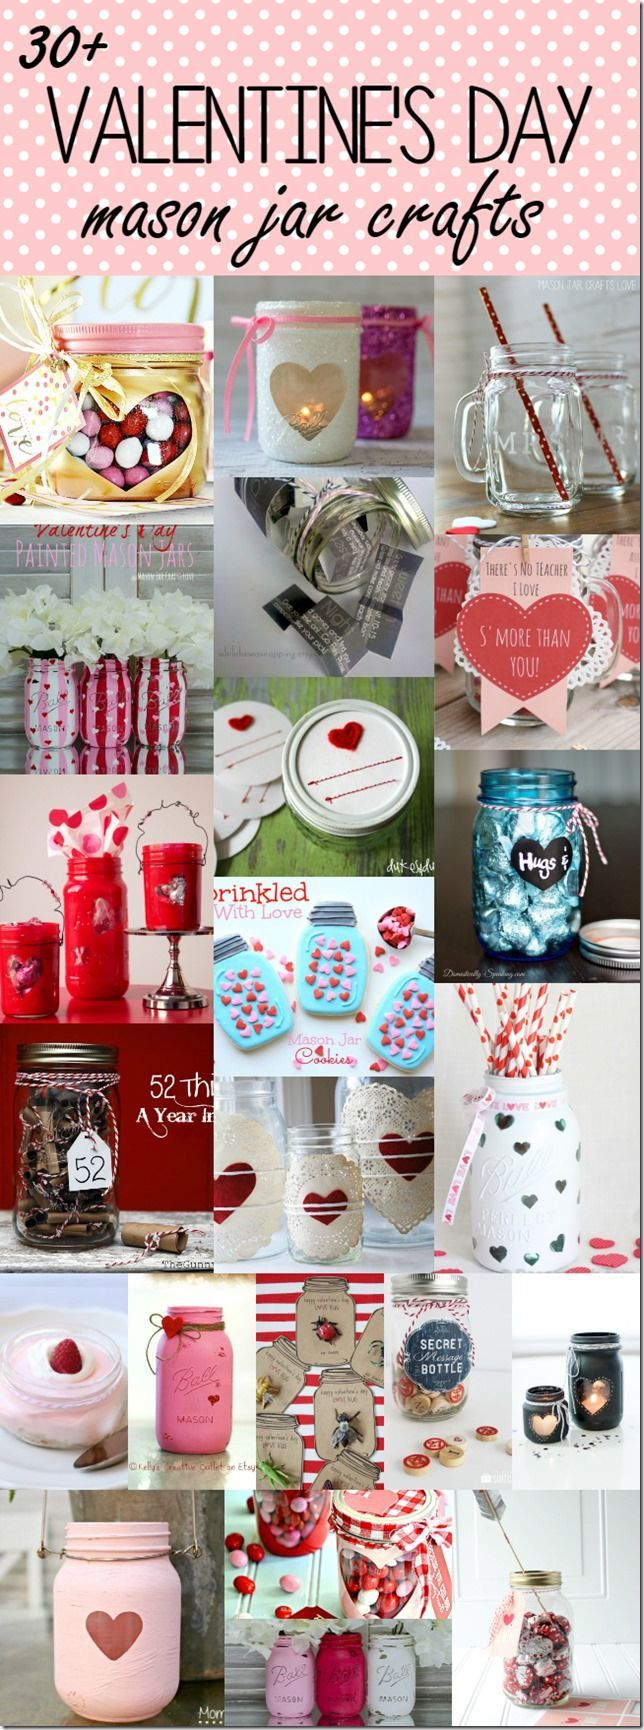 Mason Jar Projects 2334 Best Things To Do With Mason Jars And Wine Bottles Images On